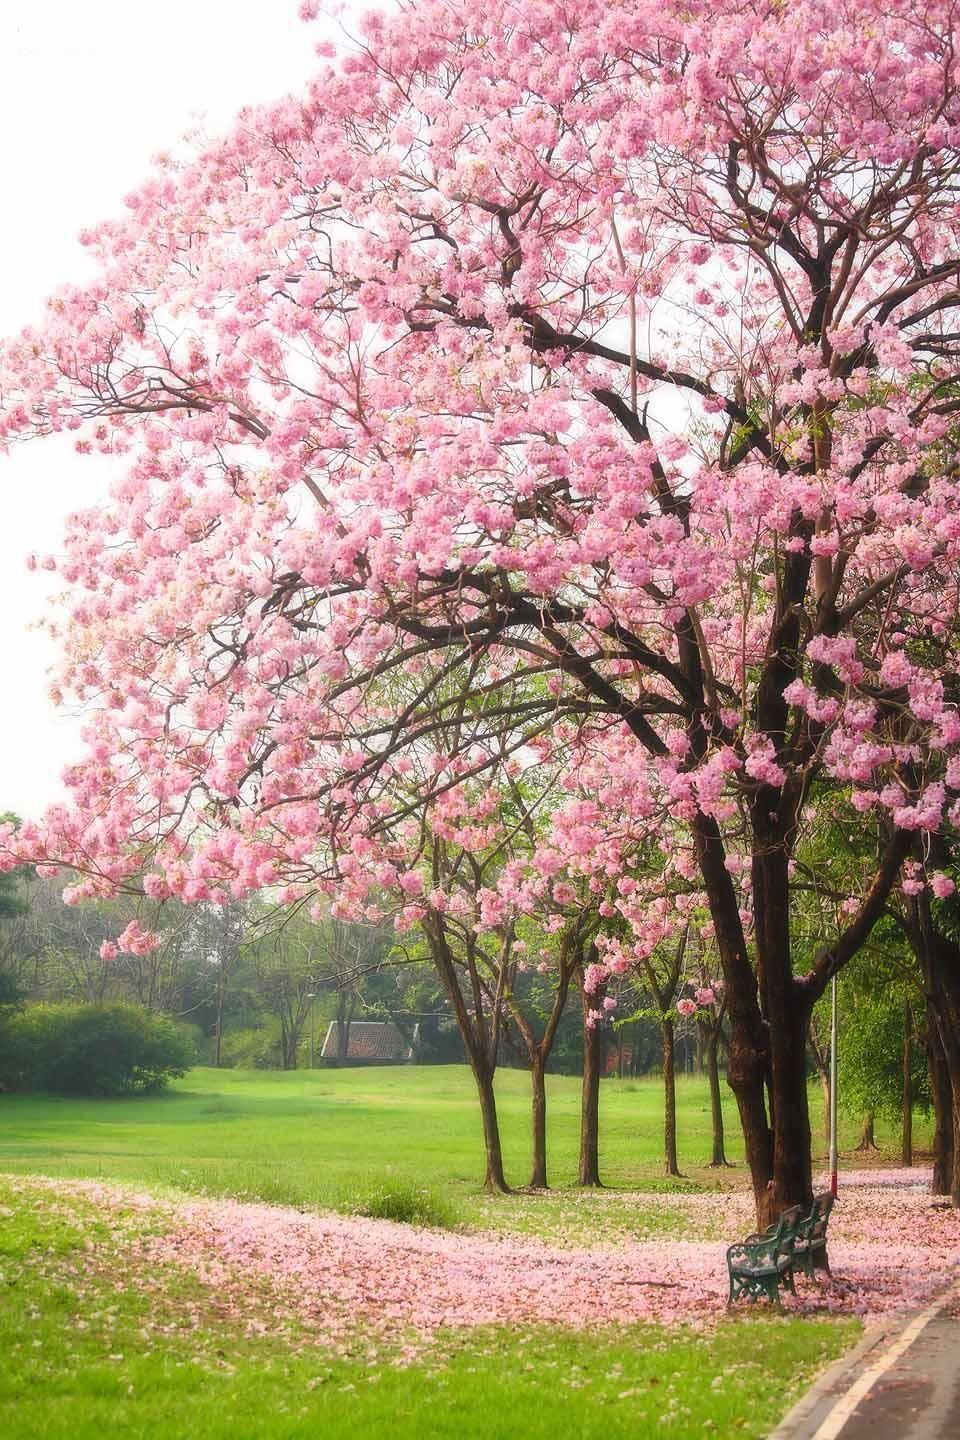 Tabebuia Rosea Stunning Tree I Planted One Of These In My Backyard A Few Years Ago First Flowers Last Year Garden Vines Flowering Trees Garden Shrubs